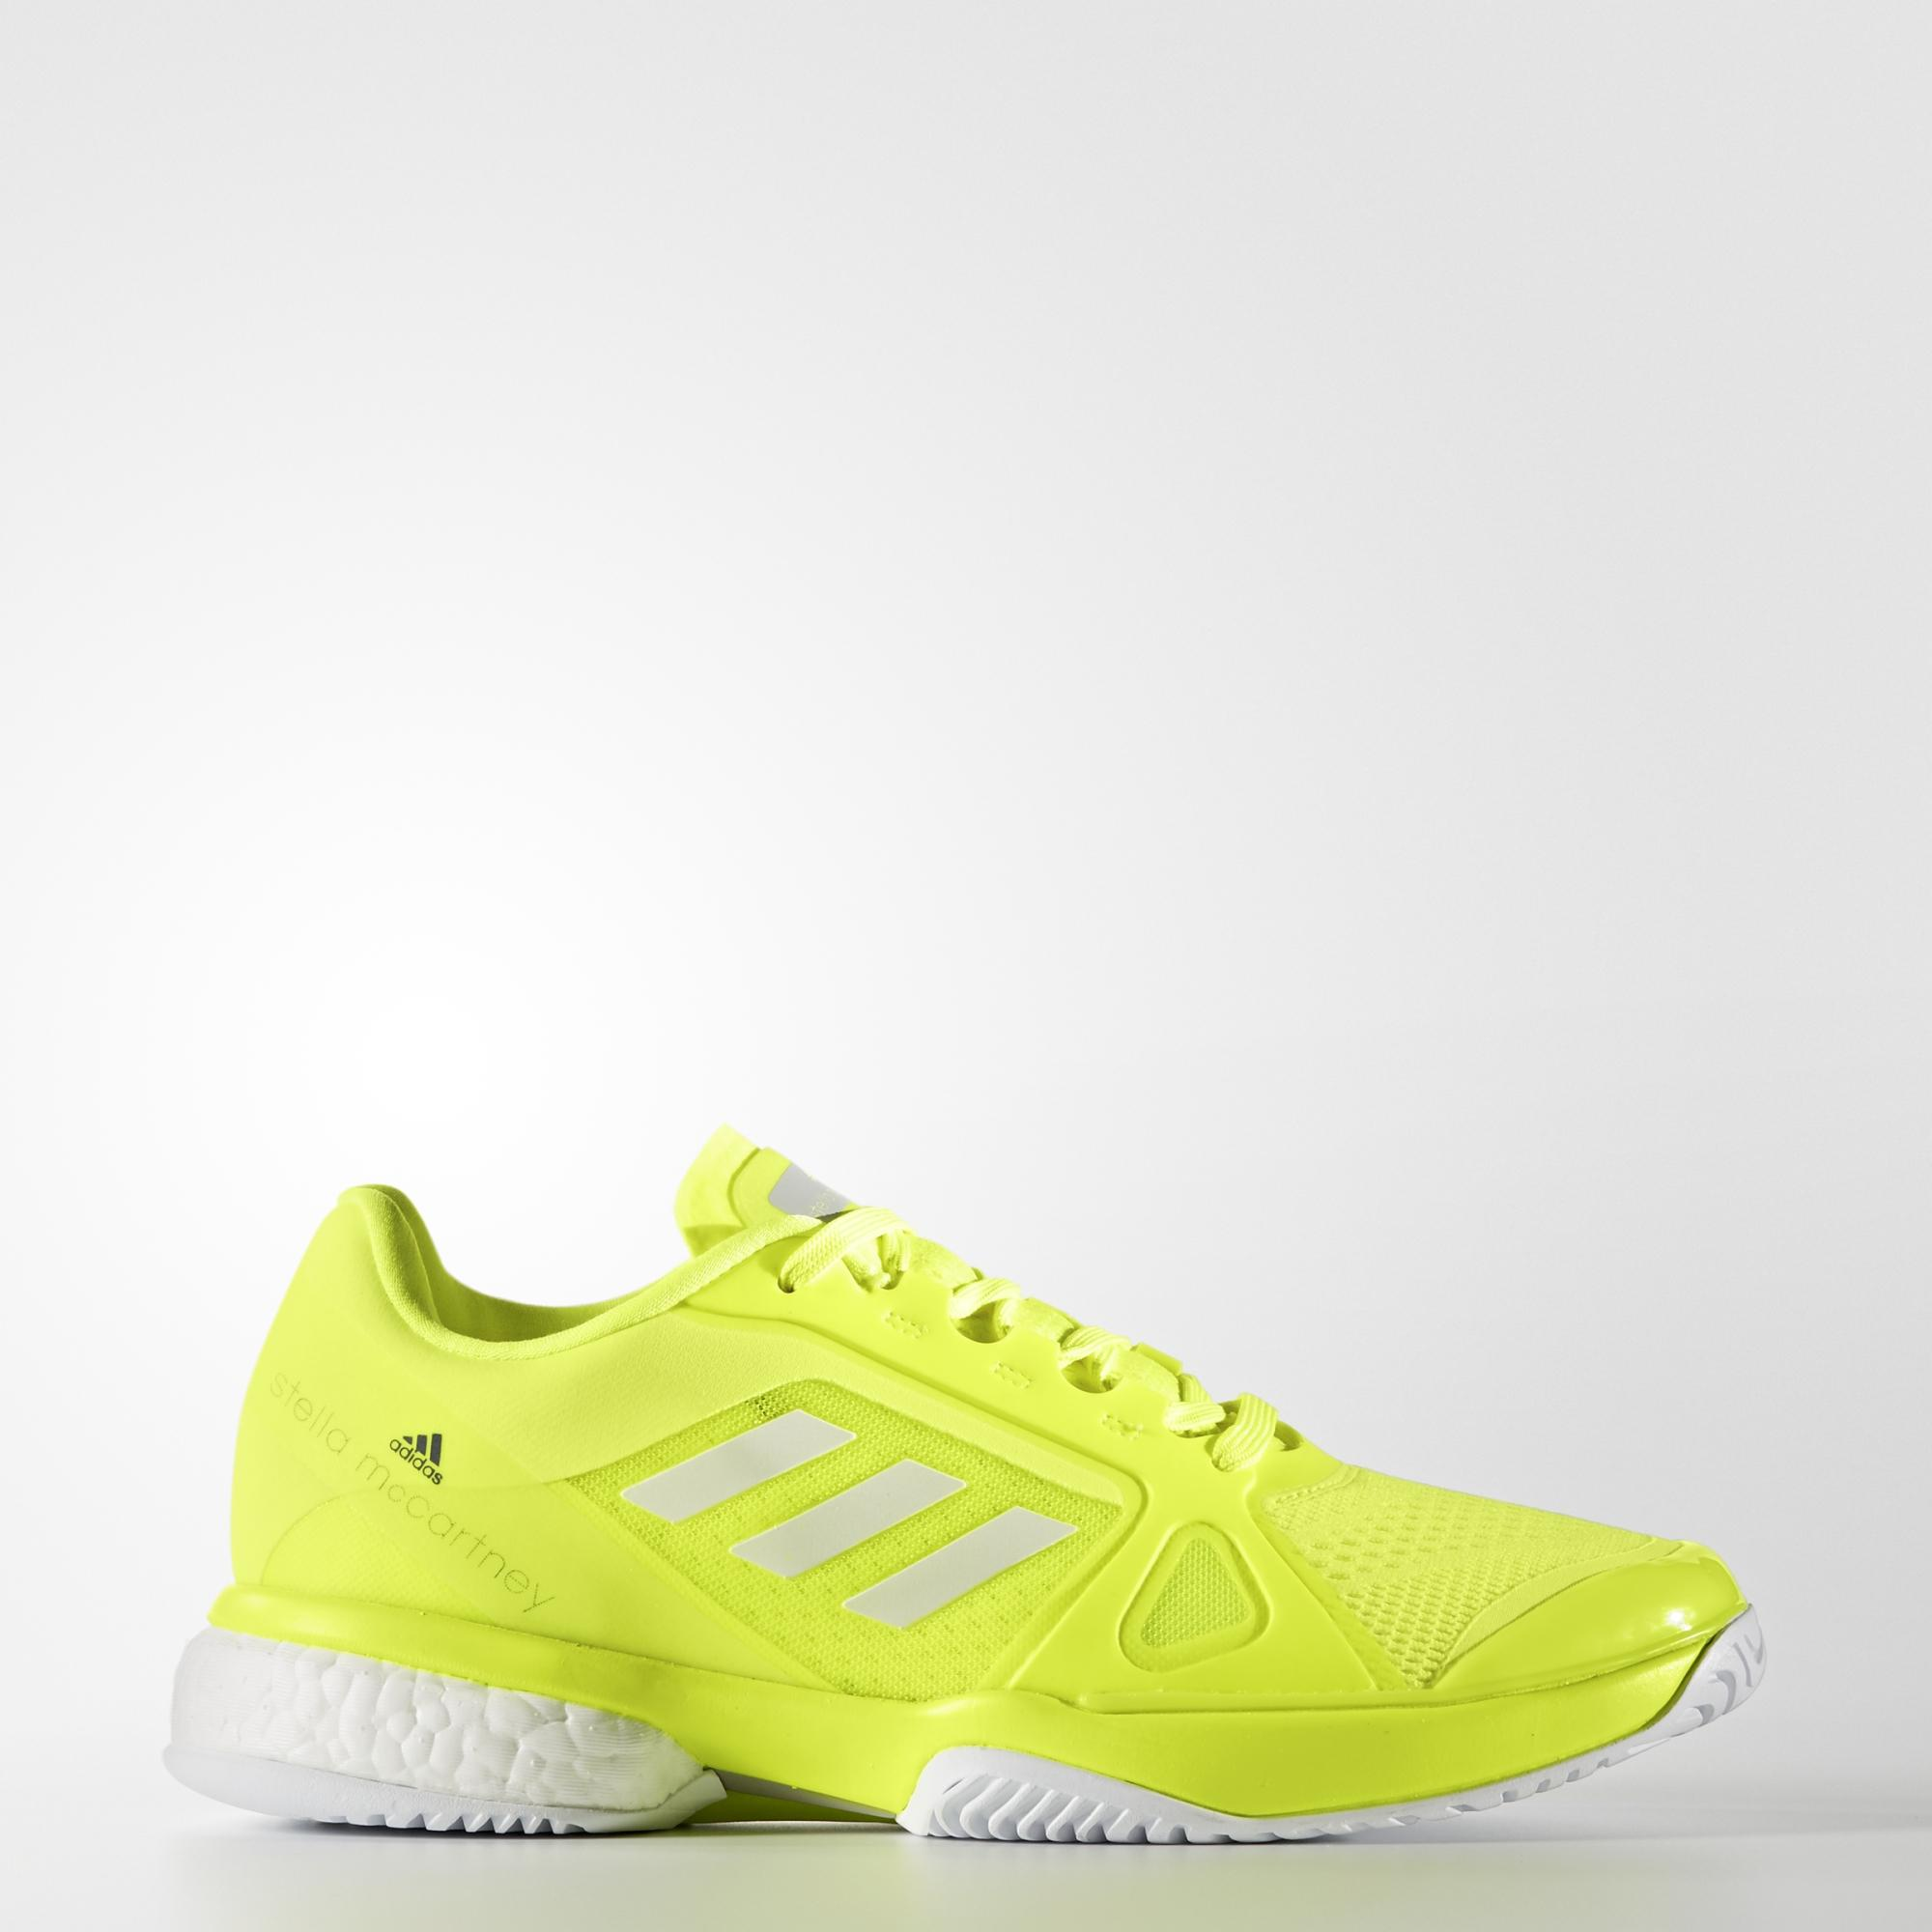 new concept 9e679 7c2df Adidas Womens SMC Barricade Boost 2017 Tennis Shoes - Yellow -  Tennisnuts.com